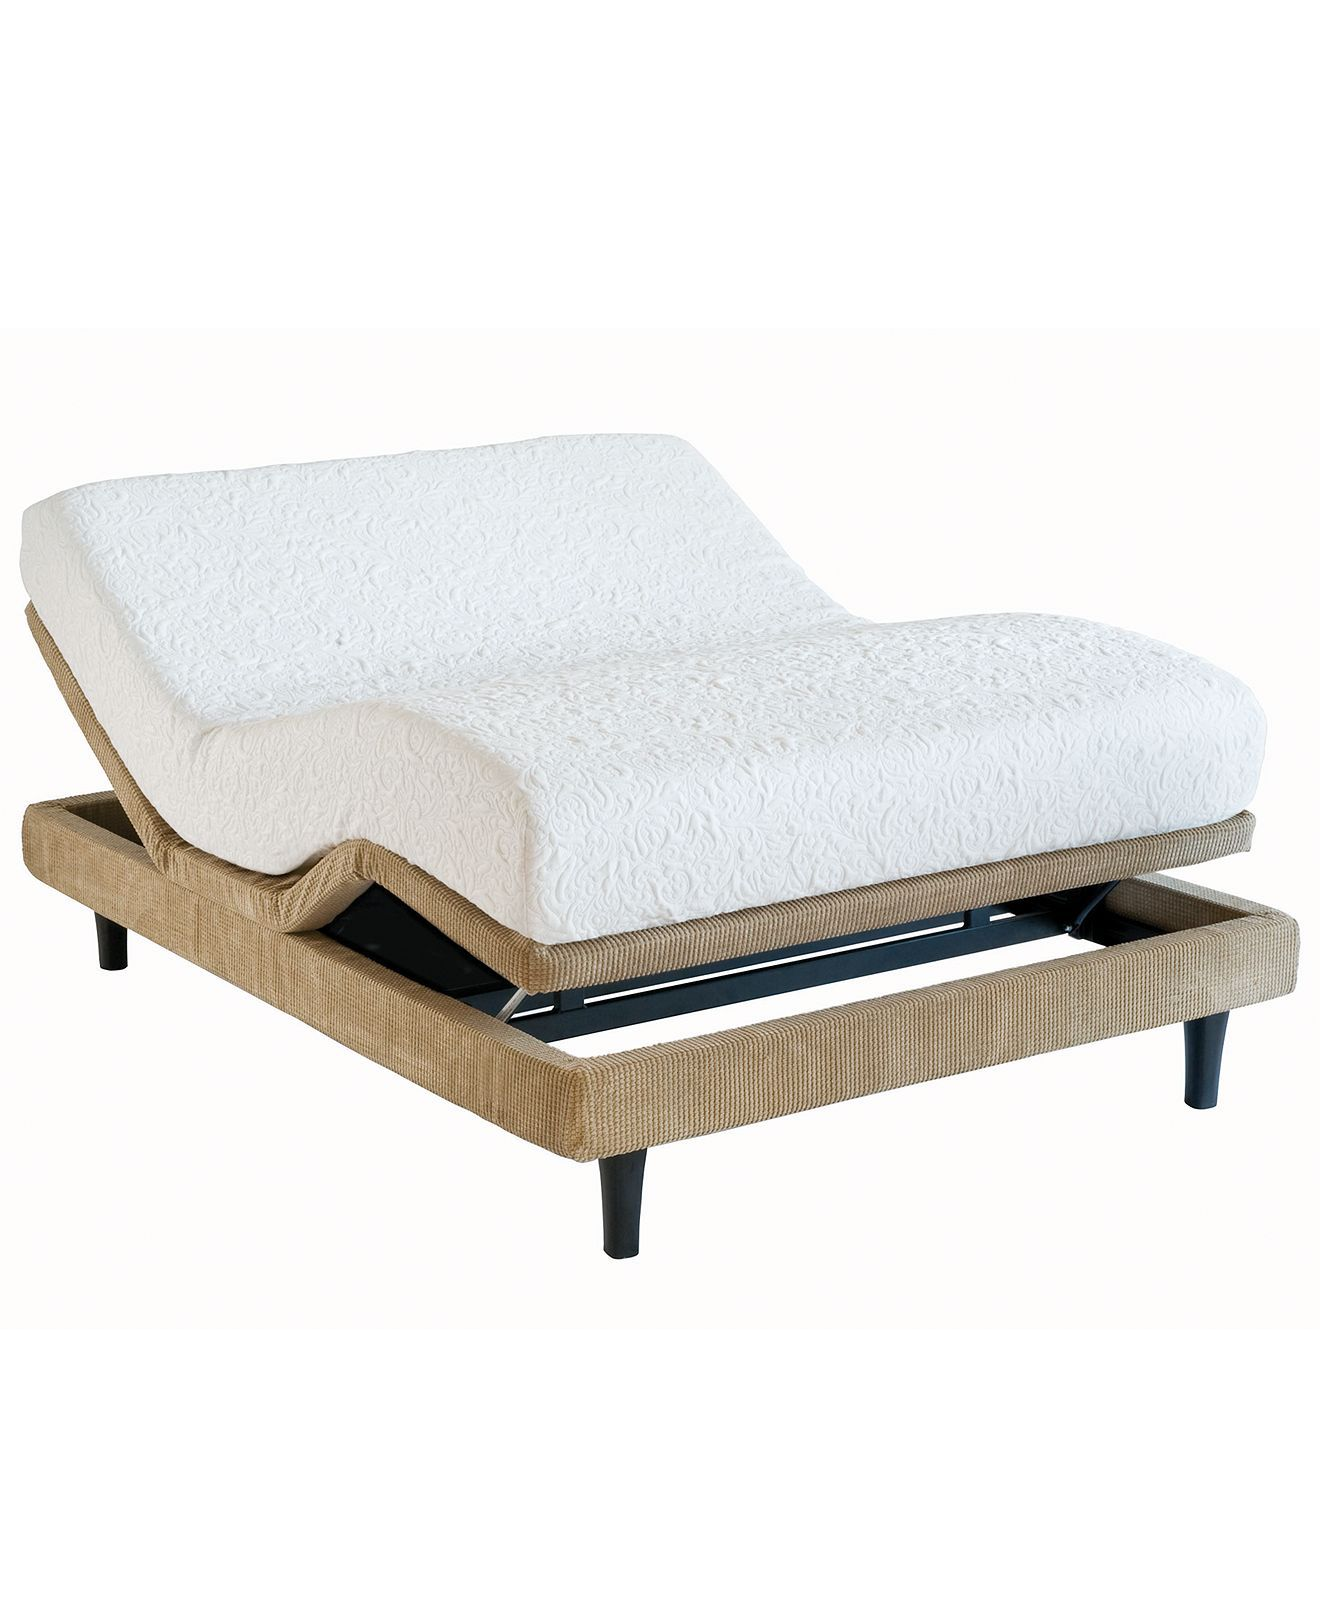 Motion iSeries Adjustable Base in 2020 Adjustable beds